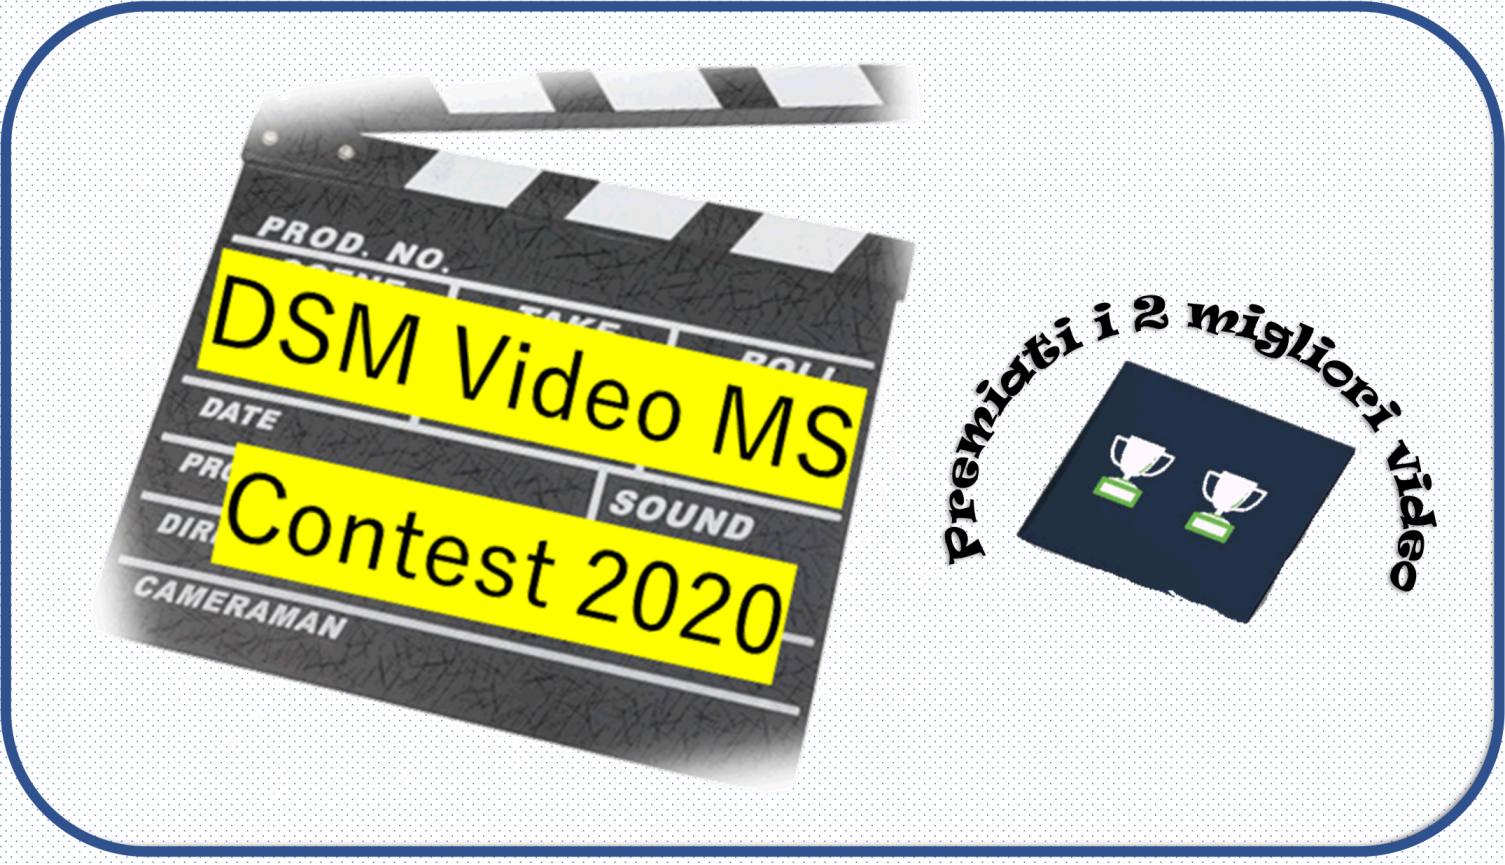 Video MS Contest 2020